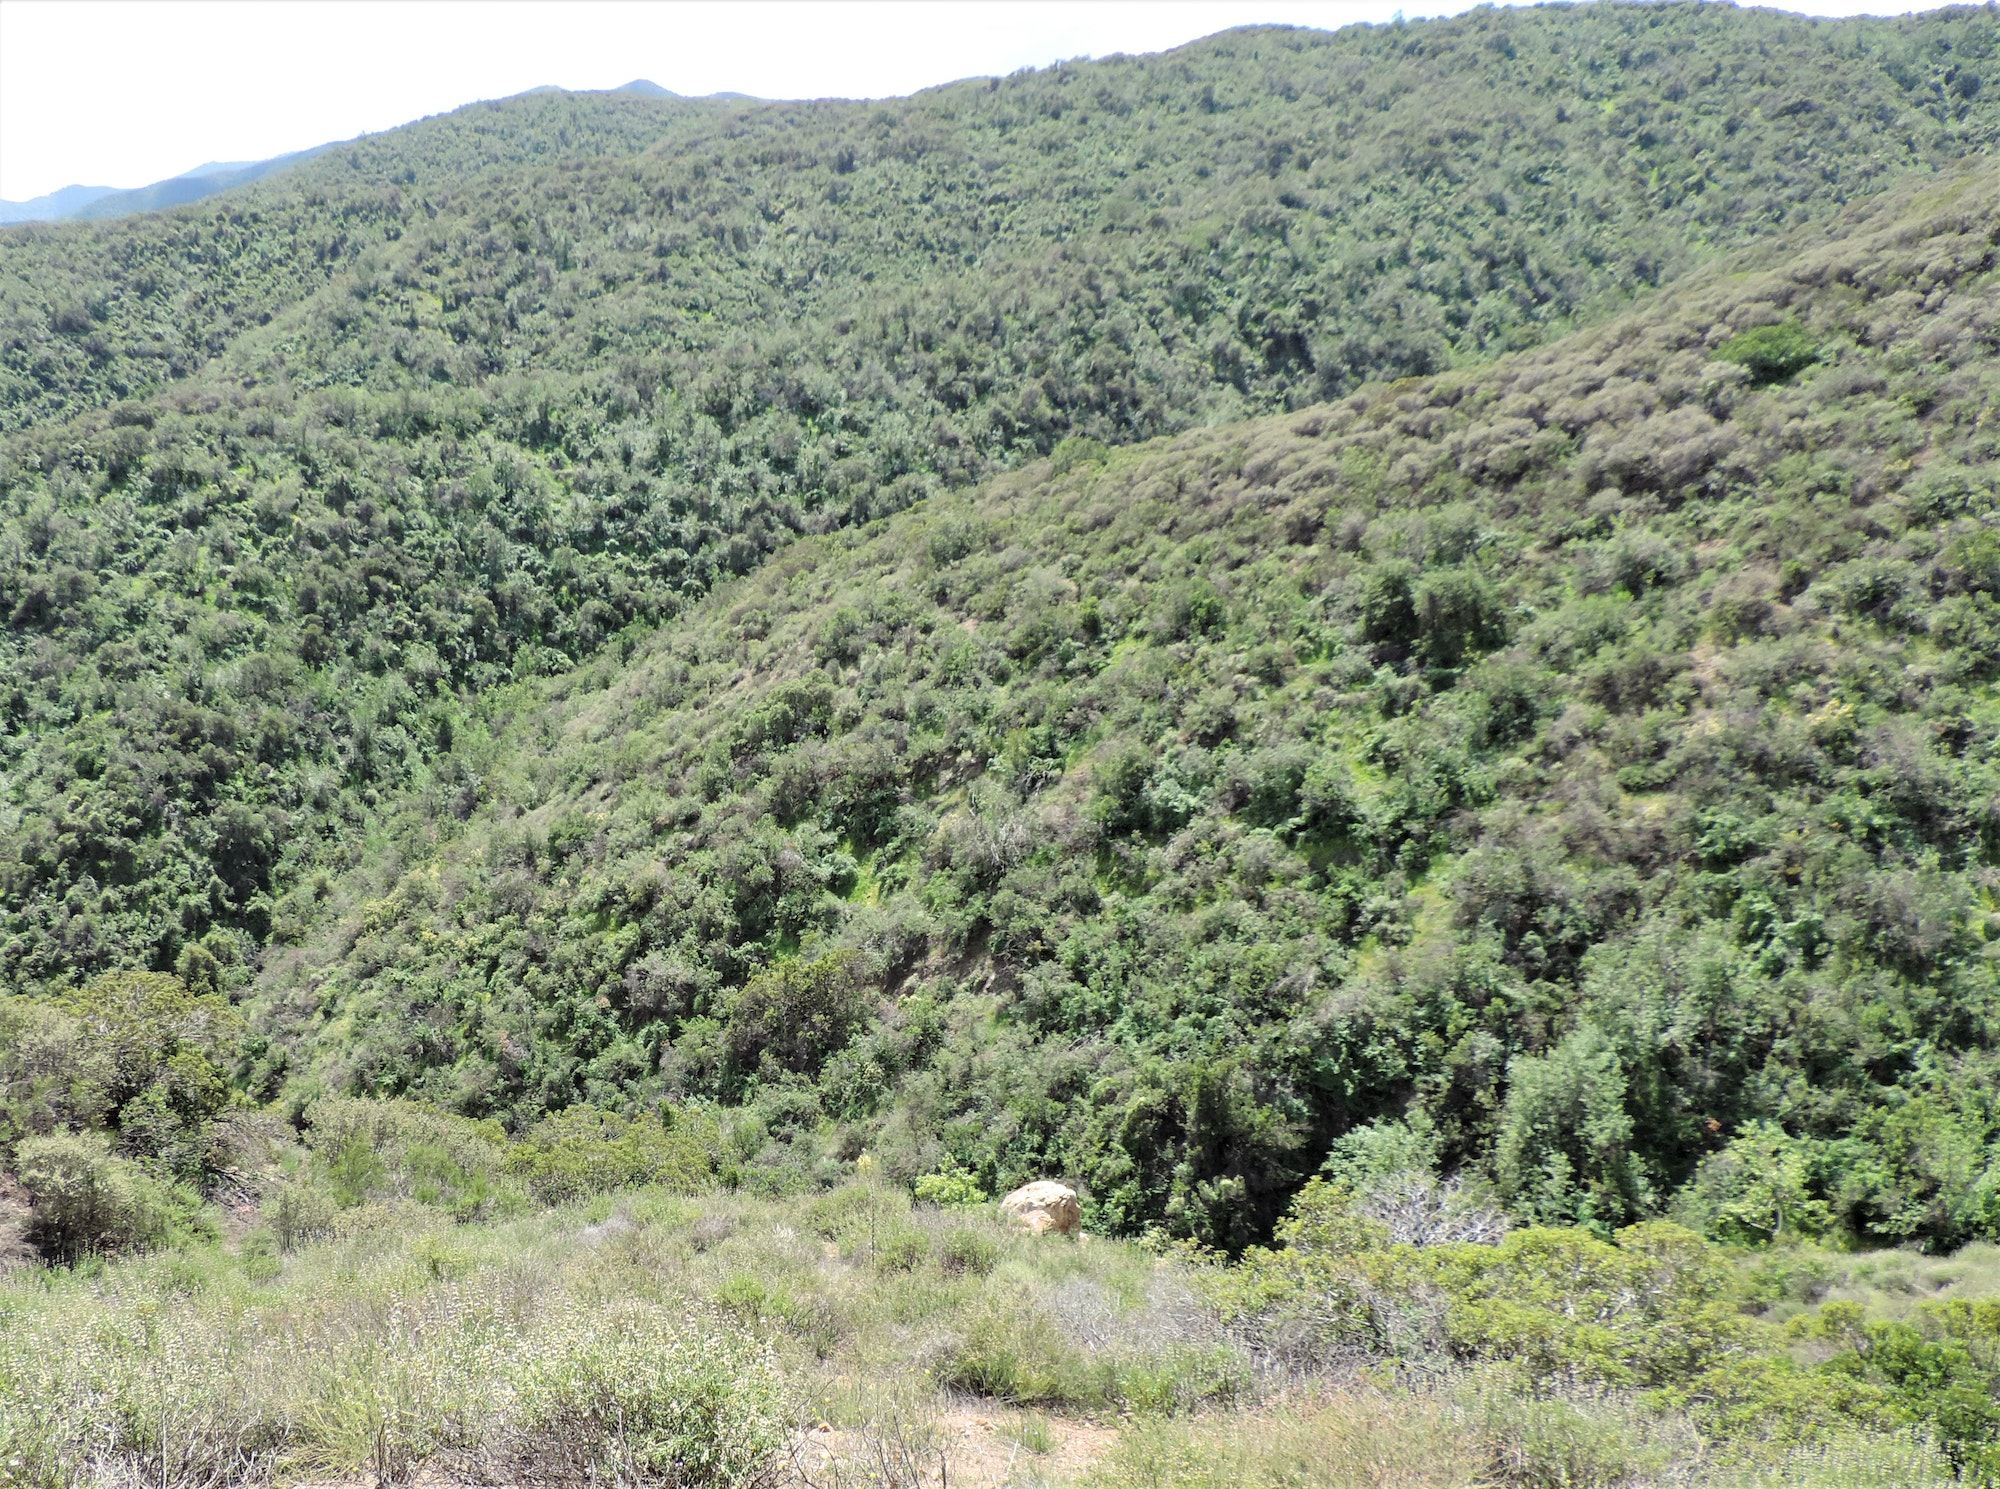 Photo of a hill covered in chaparral habitat